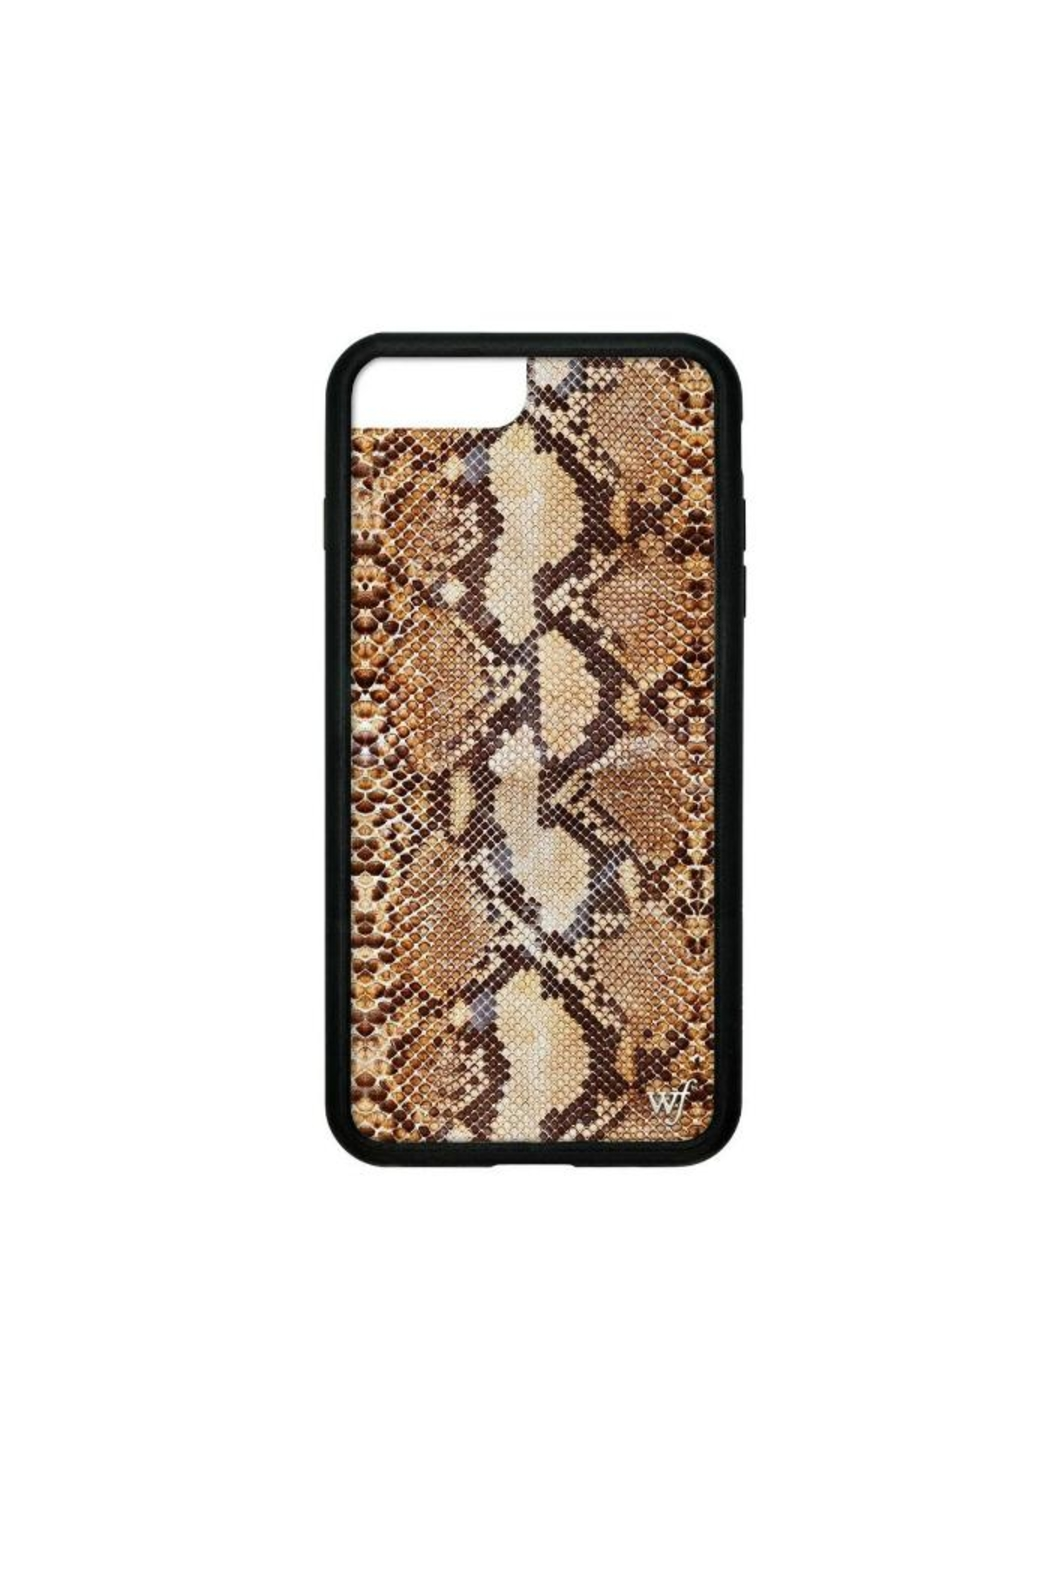 Wildflower Cases Snakeskin Iphone 6+,7+,8+ - Main Image